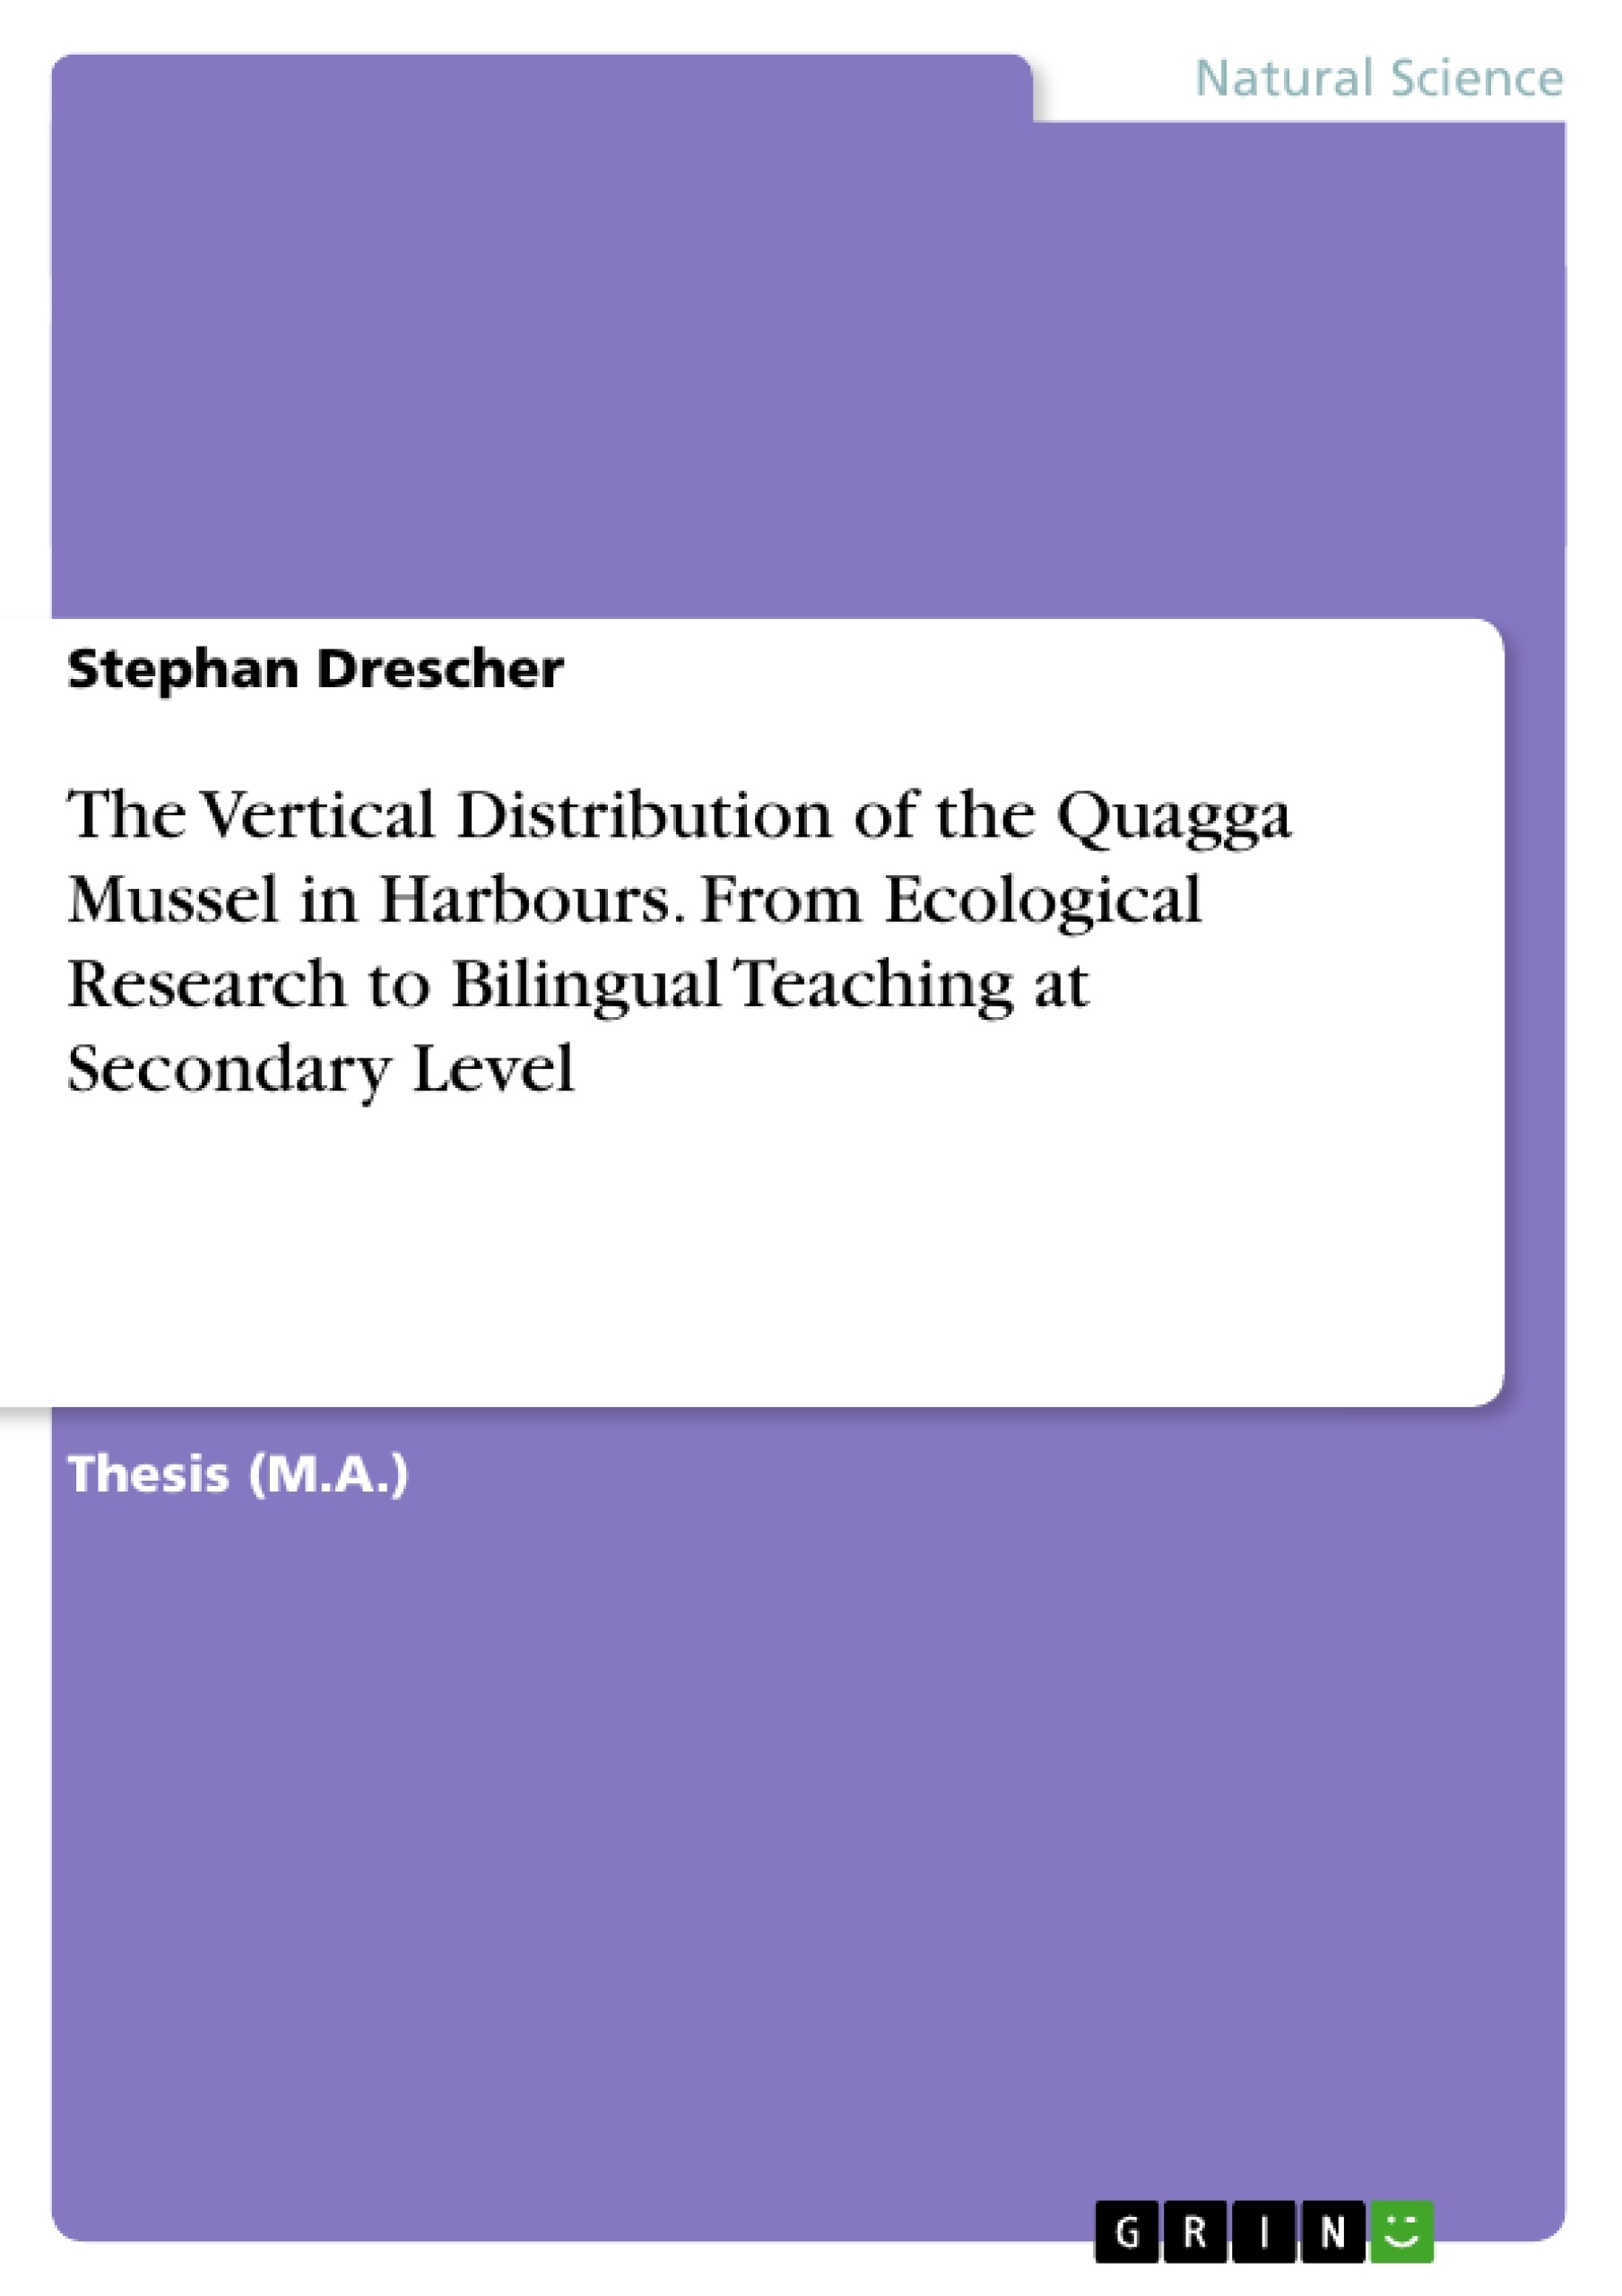 Title: The Vertical Distribution of the Quagga Mussel in Harbours. From Ecological Research to Bilingual  Teaching at Secondary Level